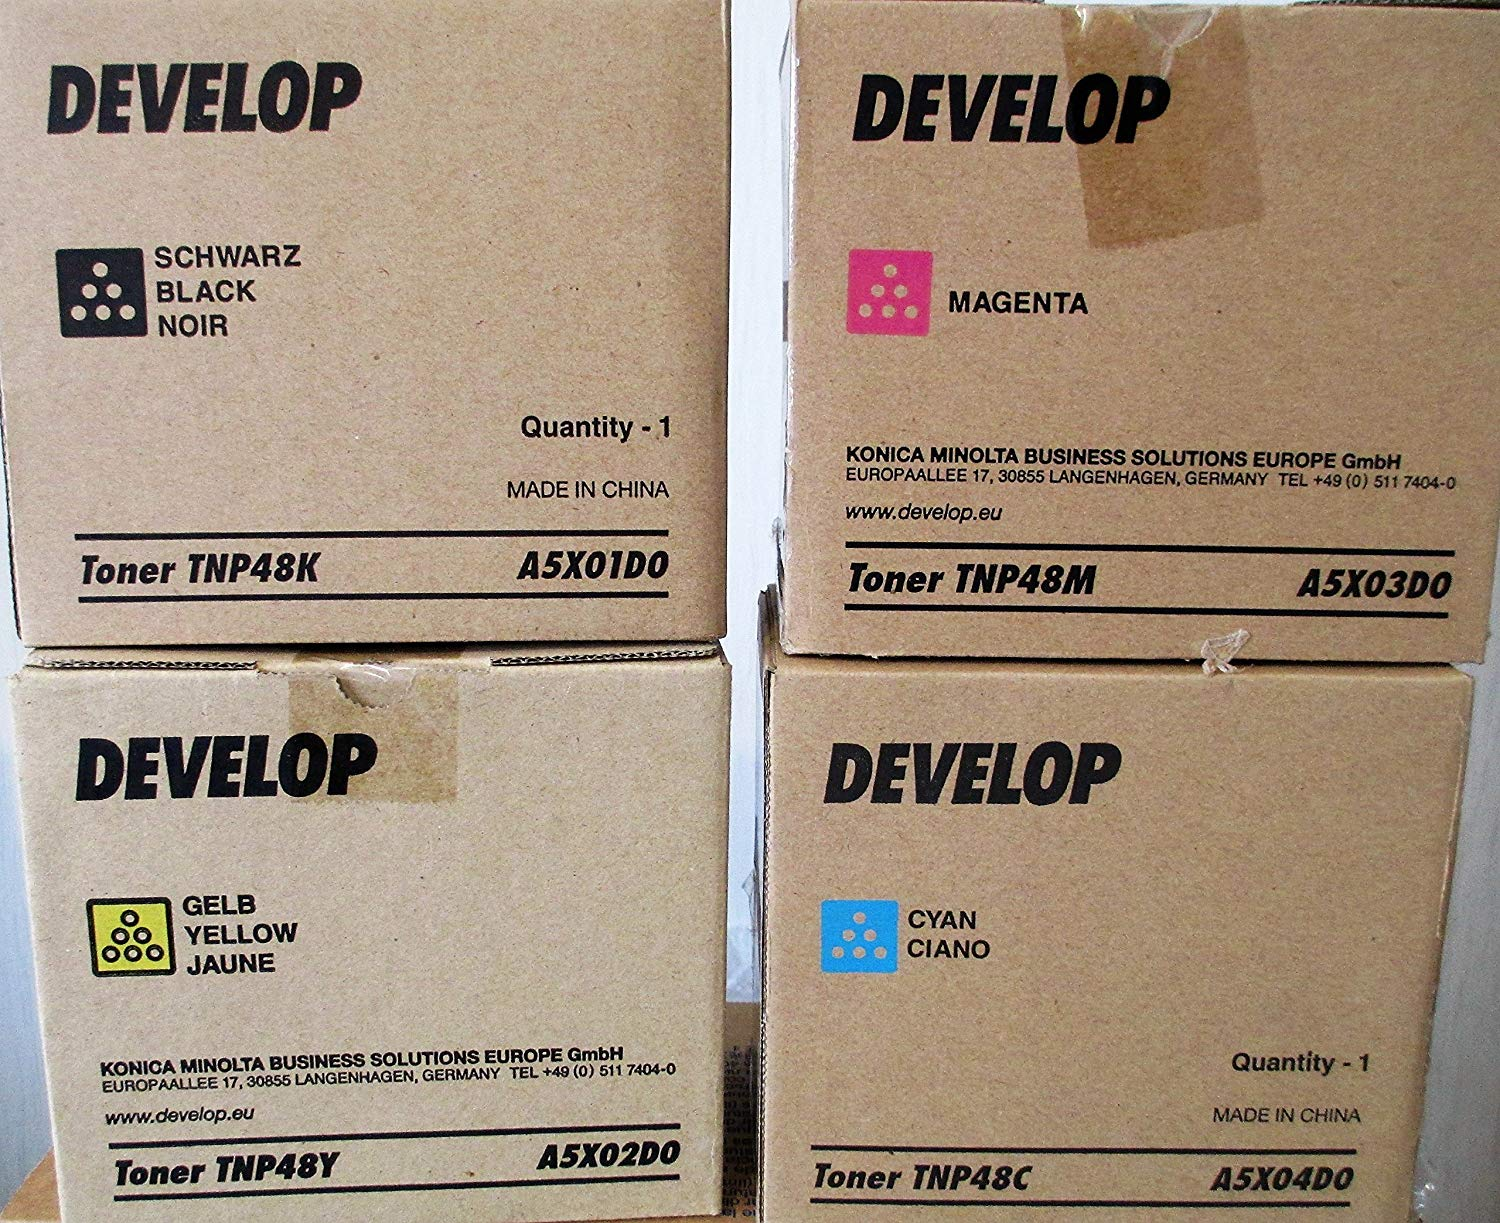 Develop A5X01D0 Toner Originale Nero 10.000 pagine